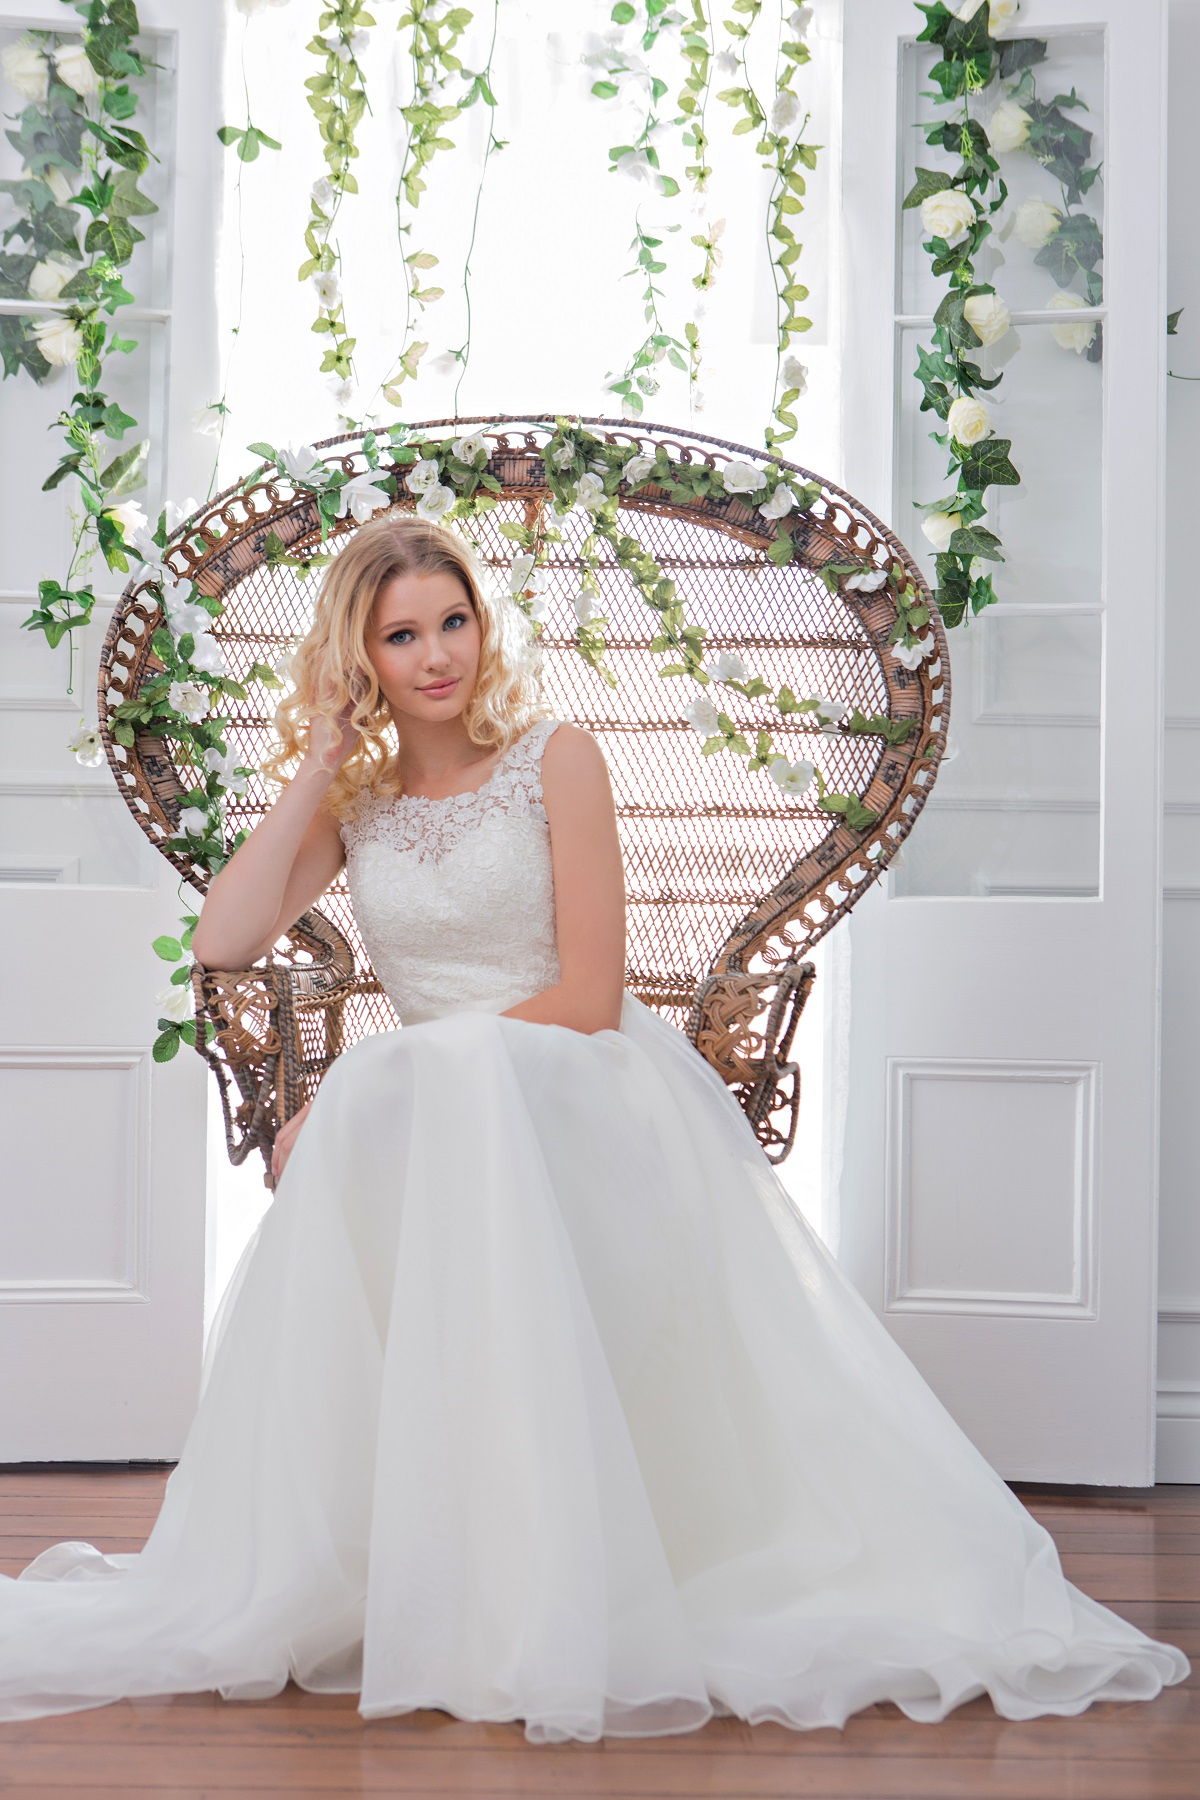 Designer wedding dresses uk sale wedding dresses in redlands for Designer wedding dresses uk